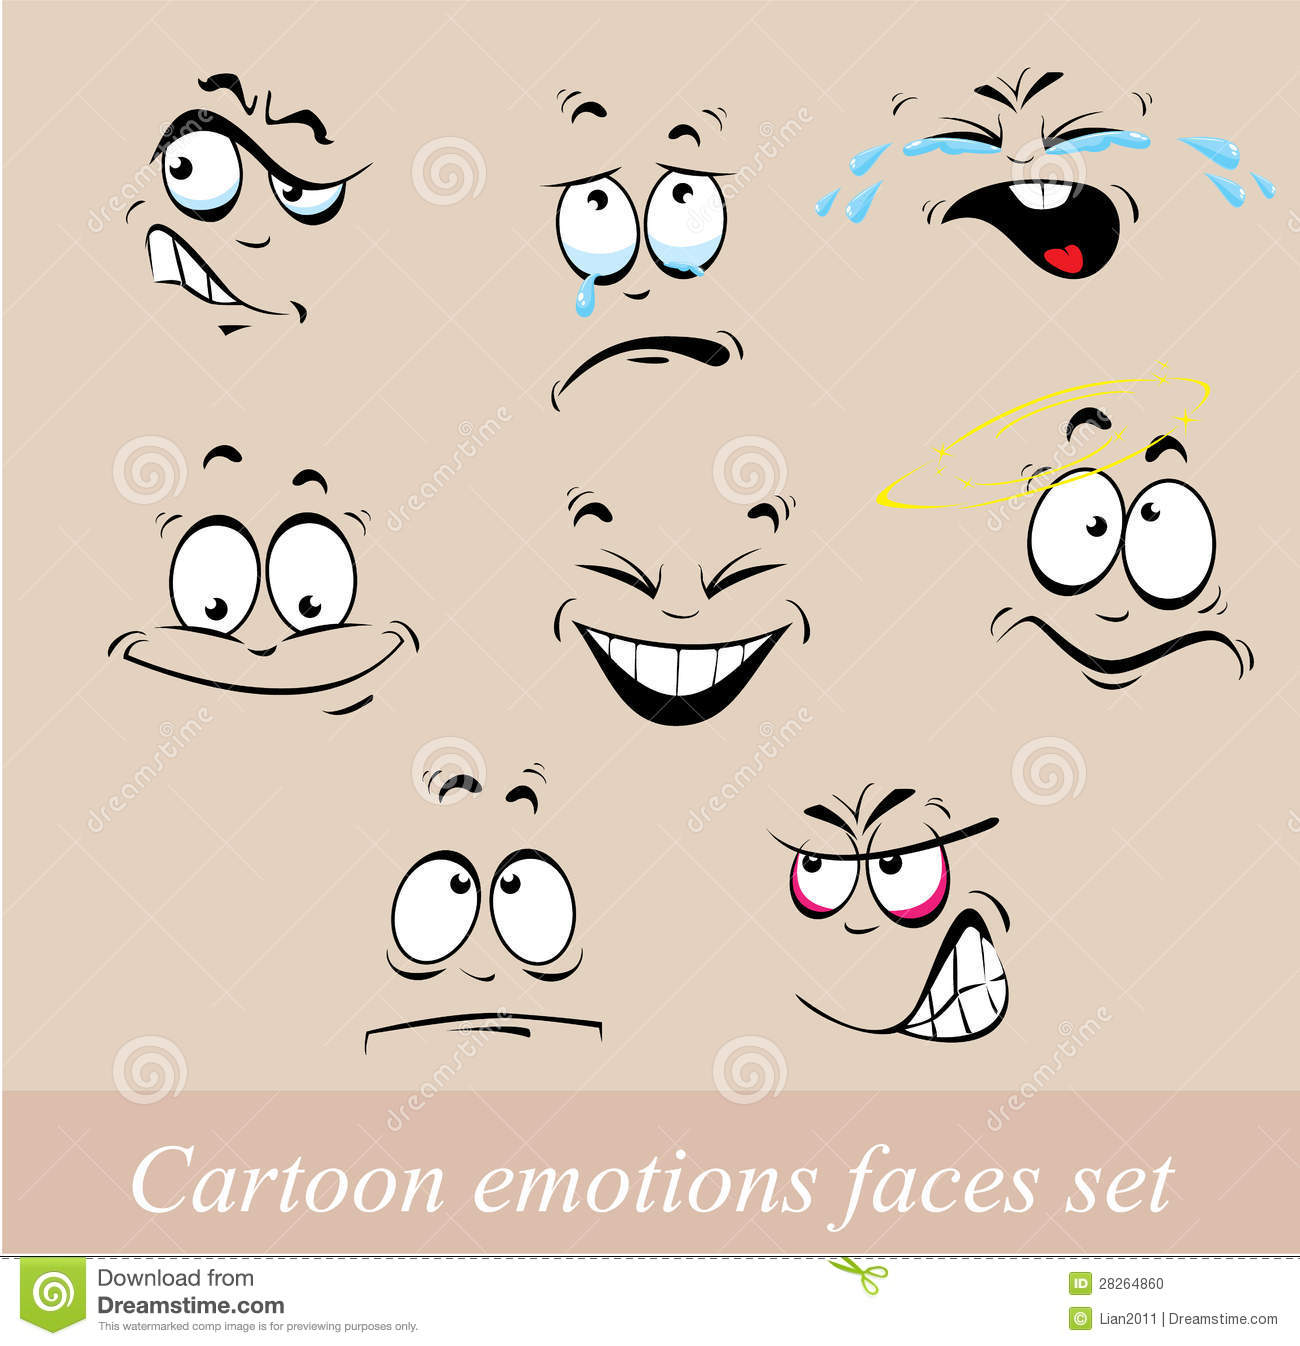 Cartoon emotions faces set stock vector image of